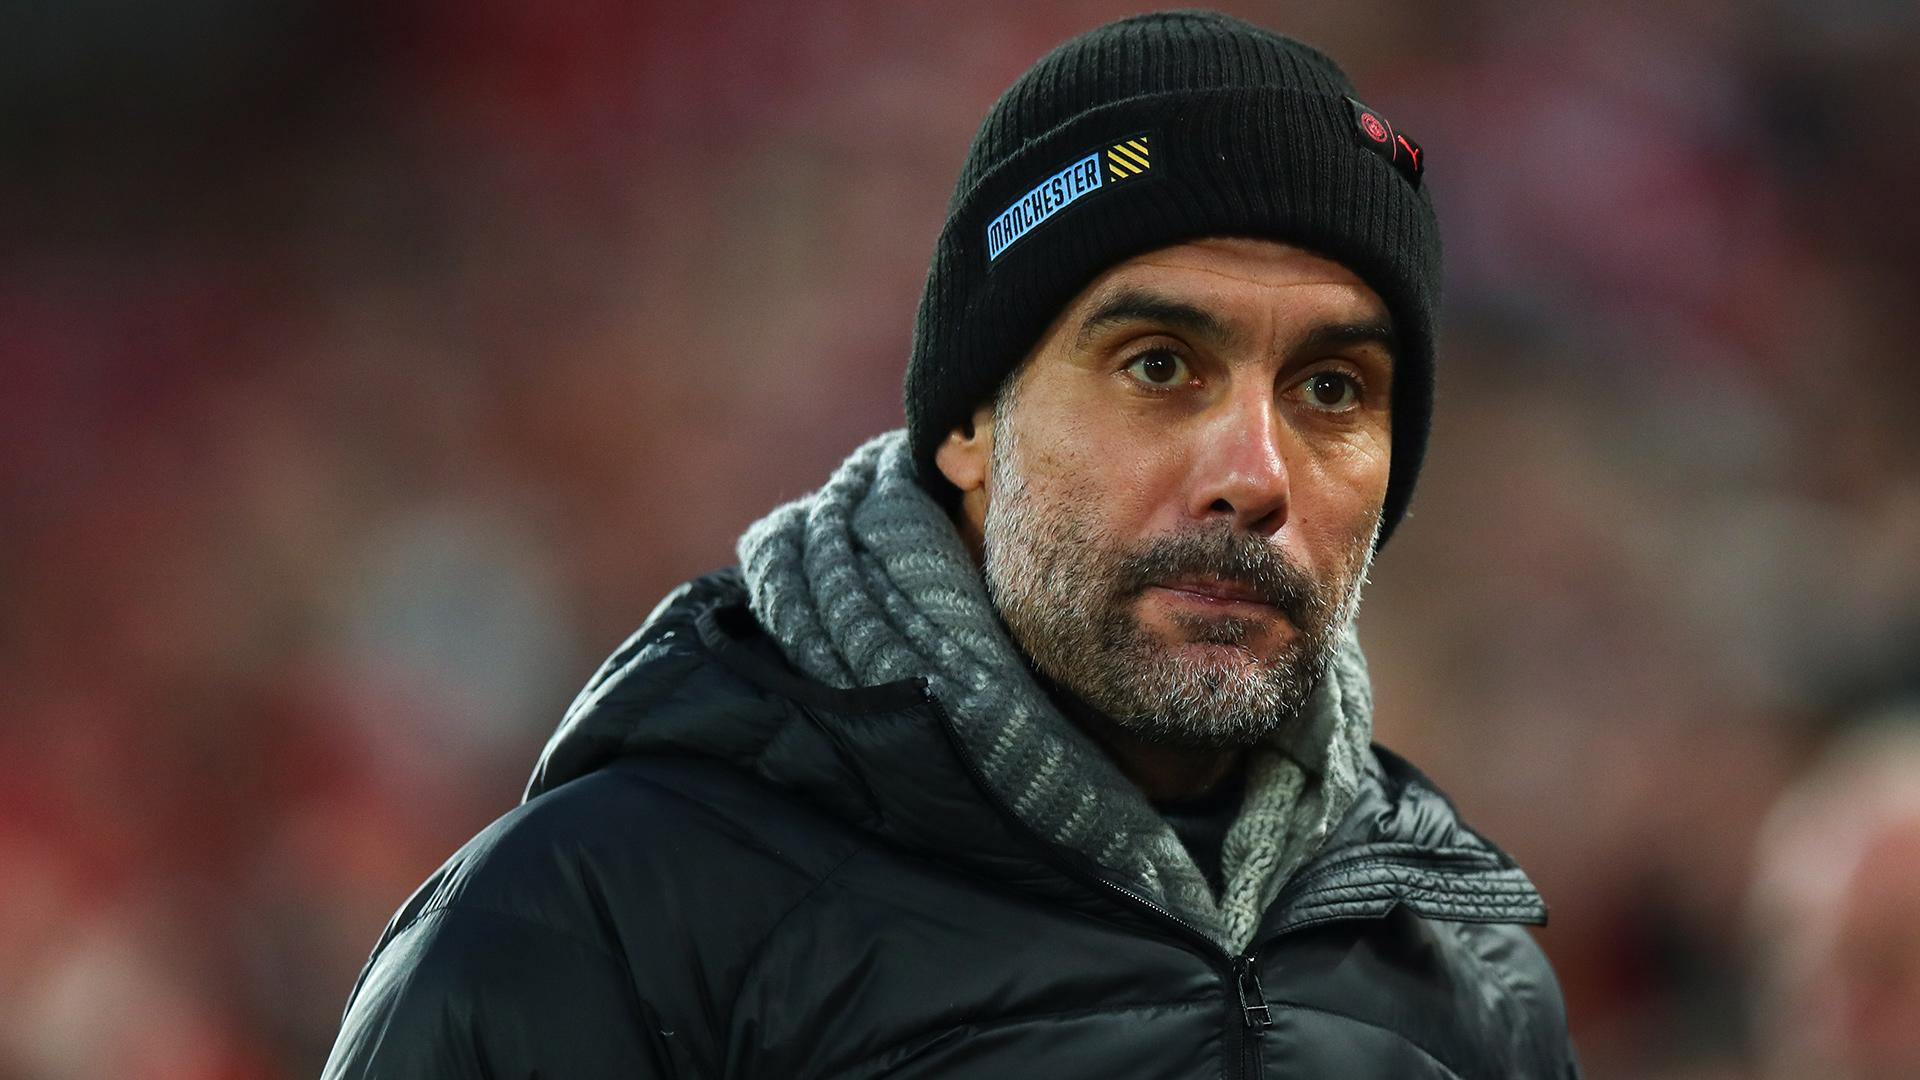 Manchester City are suffering because of Pep Guardiola's poor transfer decisions